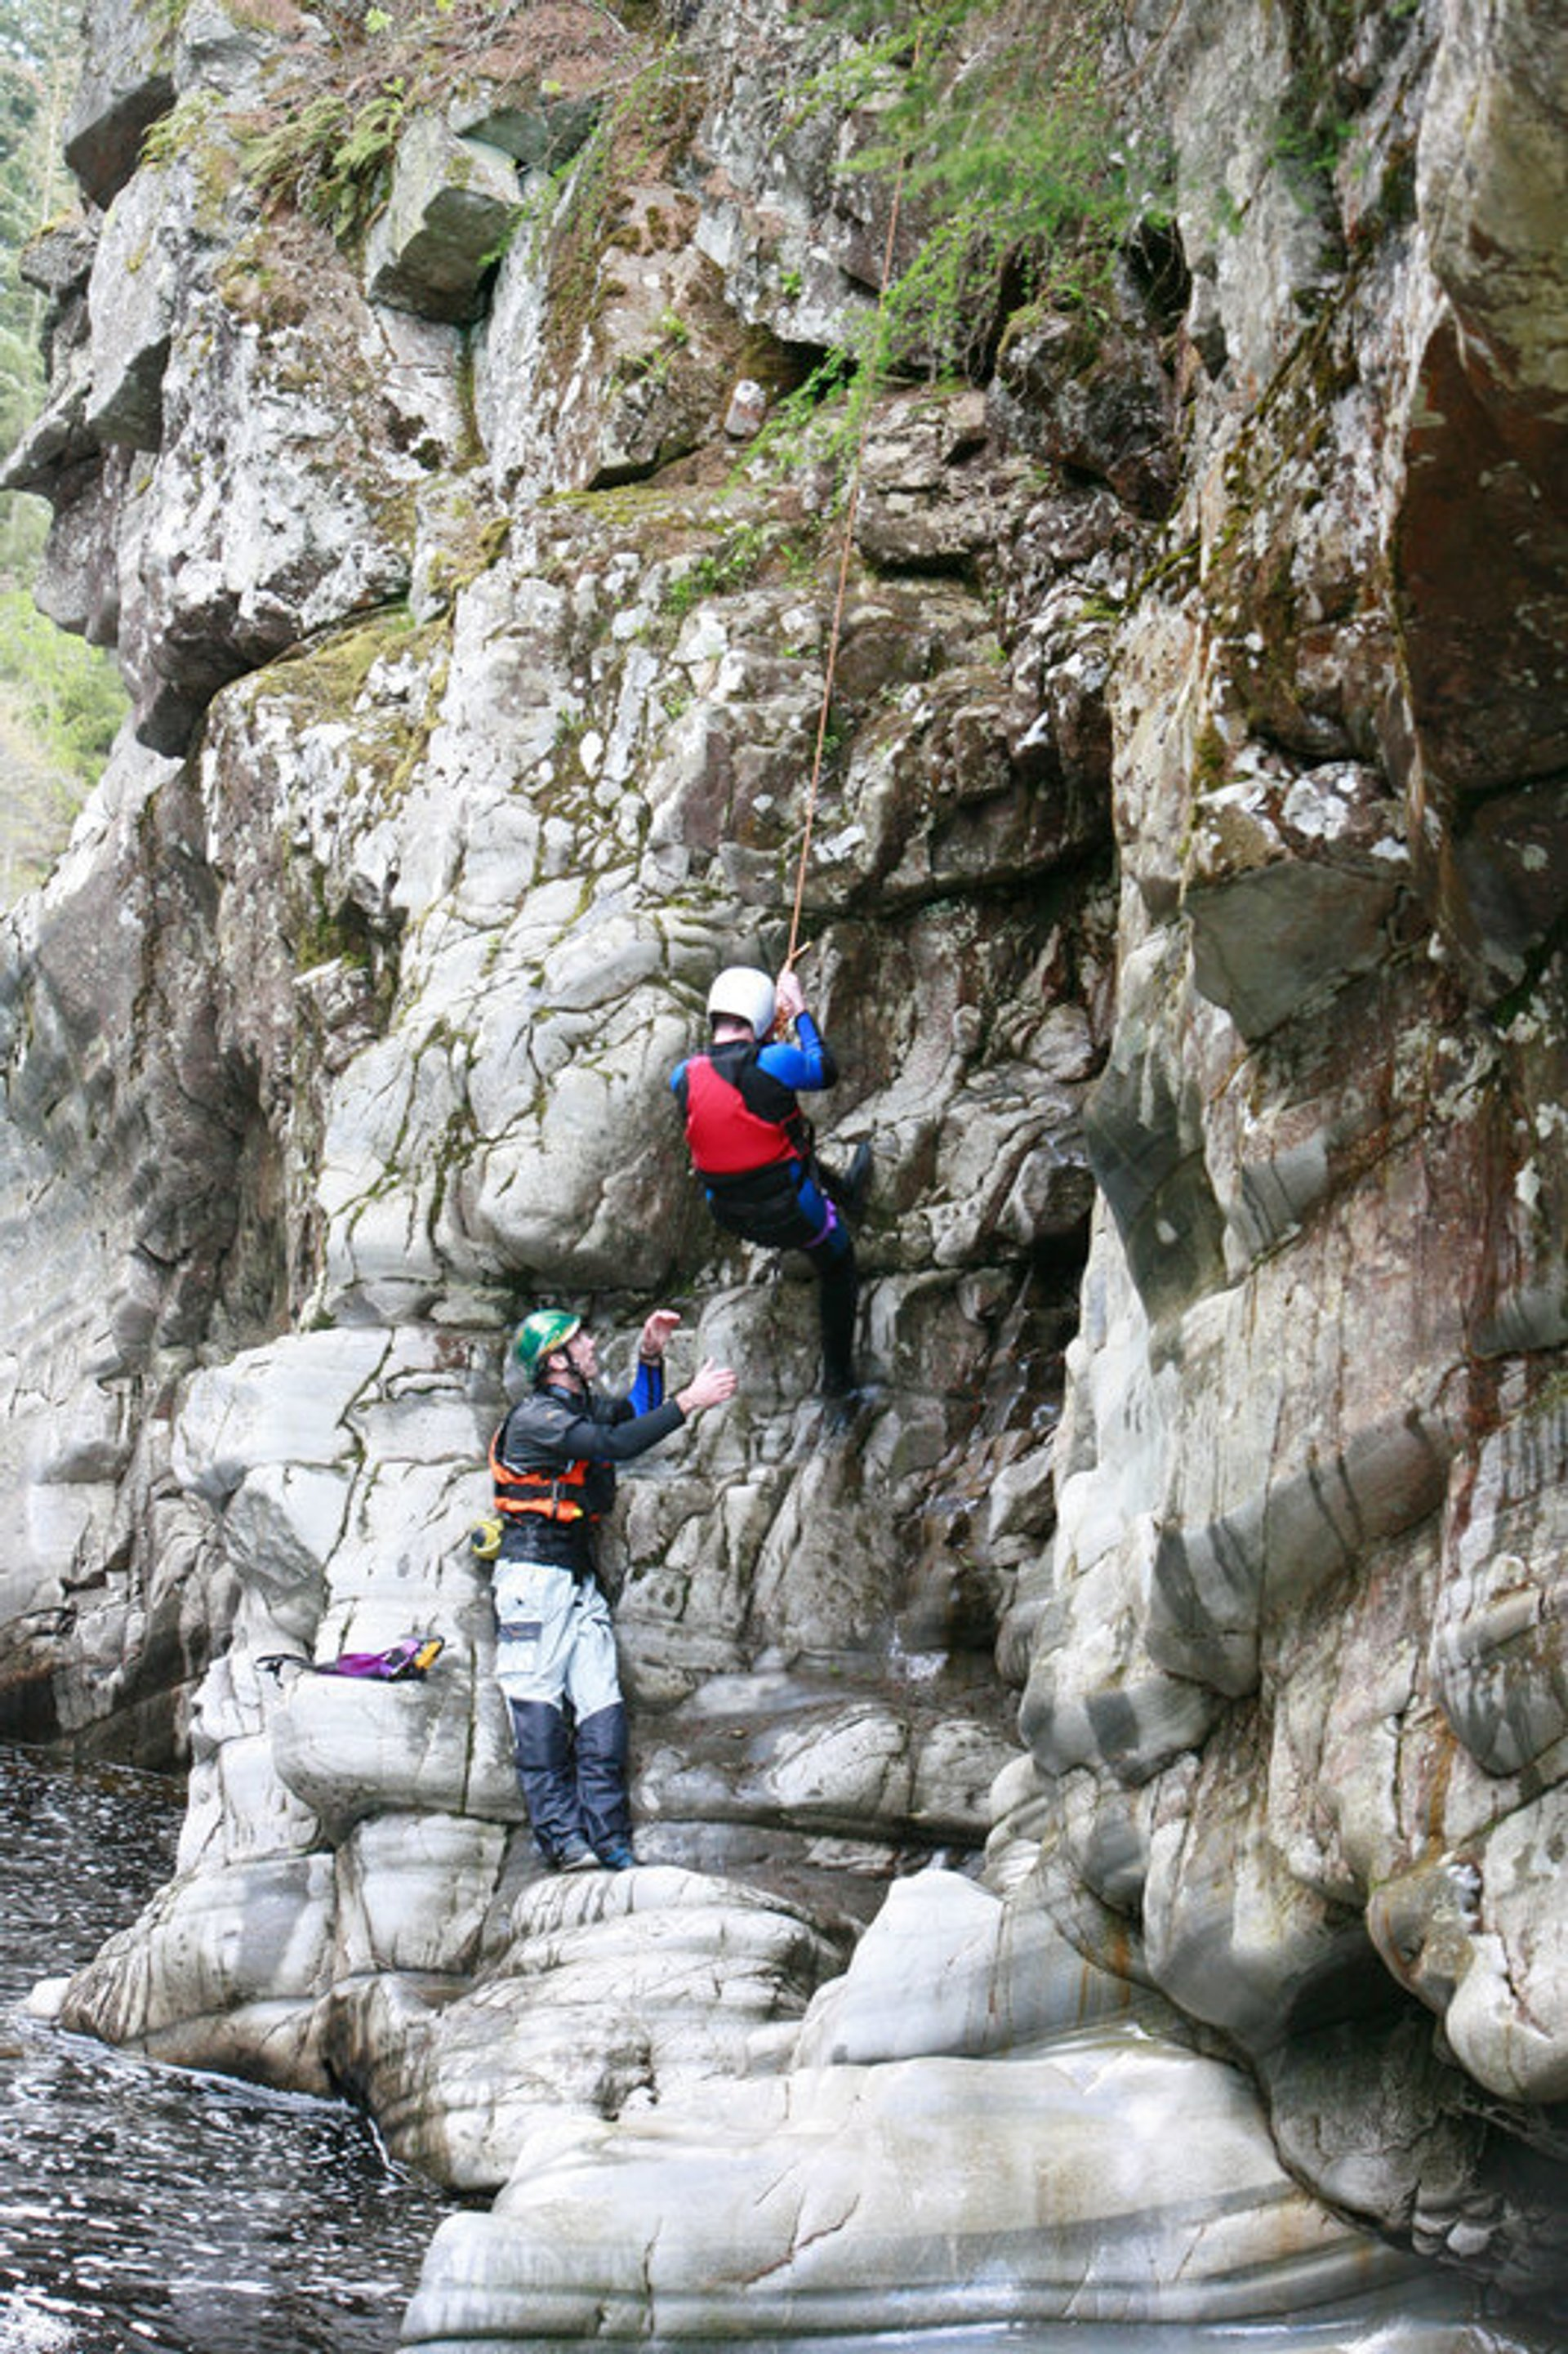 Canyoning in the River Garry Gorge at Calvine, Perthshire  2020